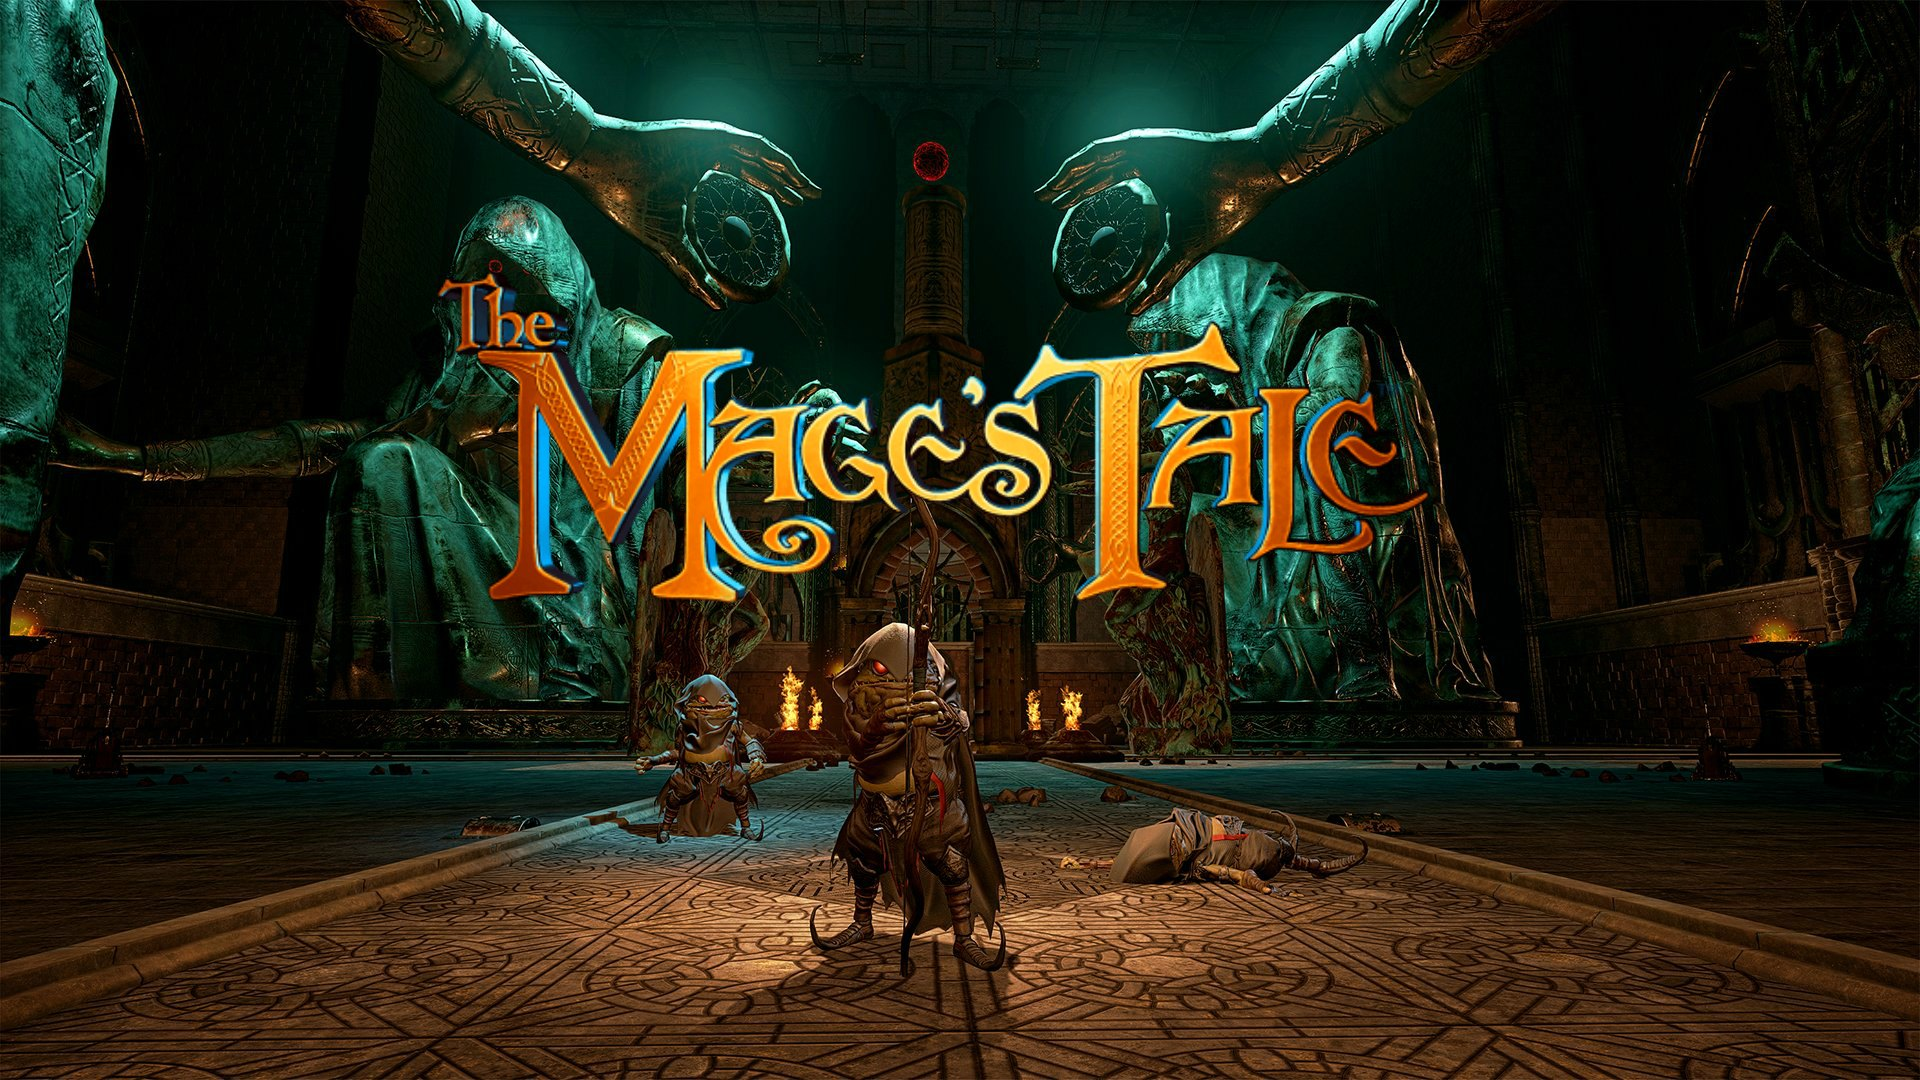 Sword & Sorcery Dungeon Crawler 'The Mage's Tale' Lands on